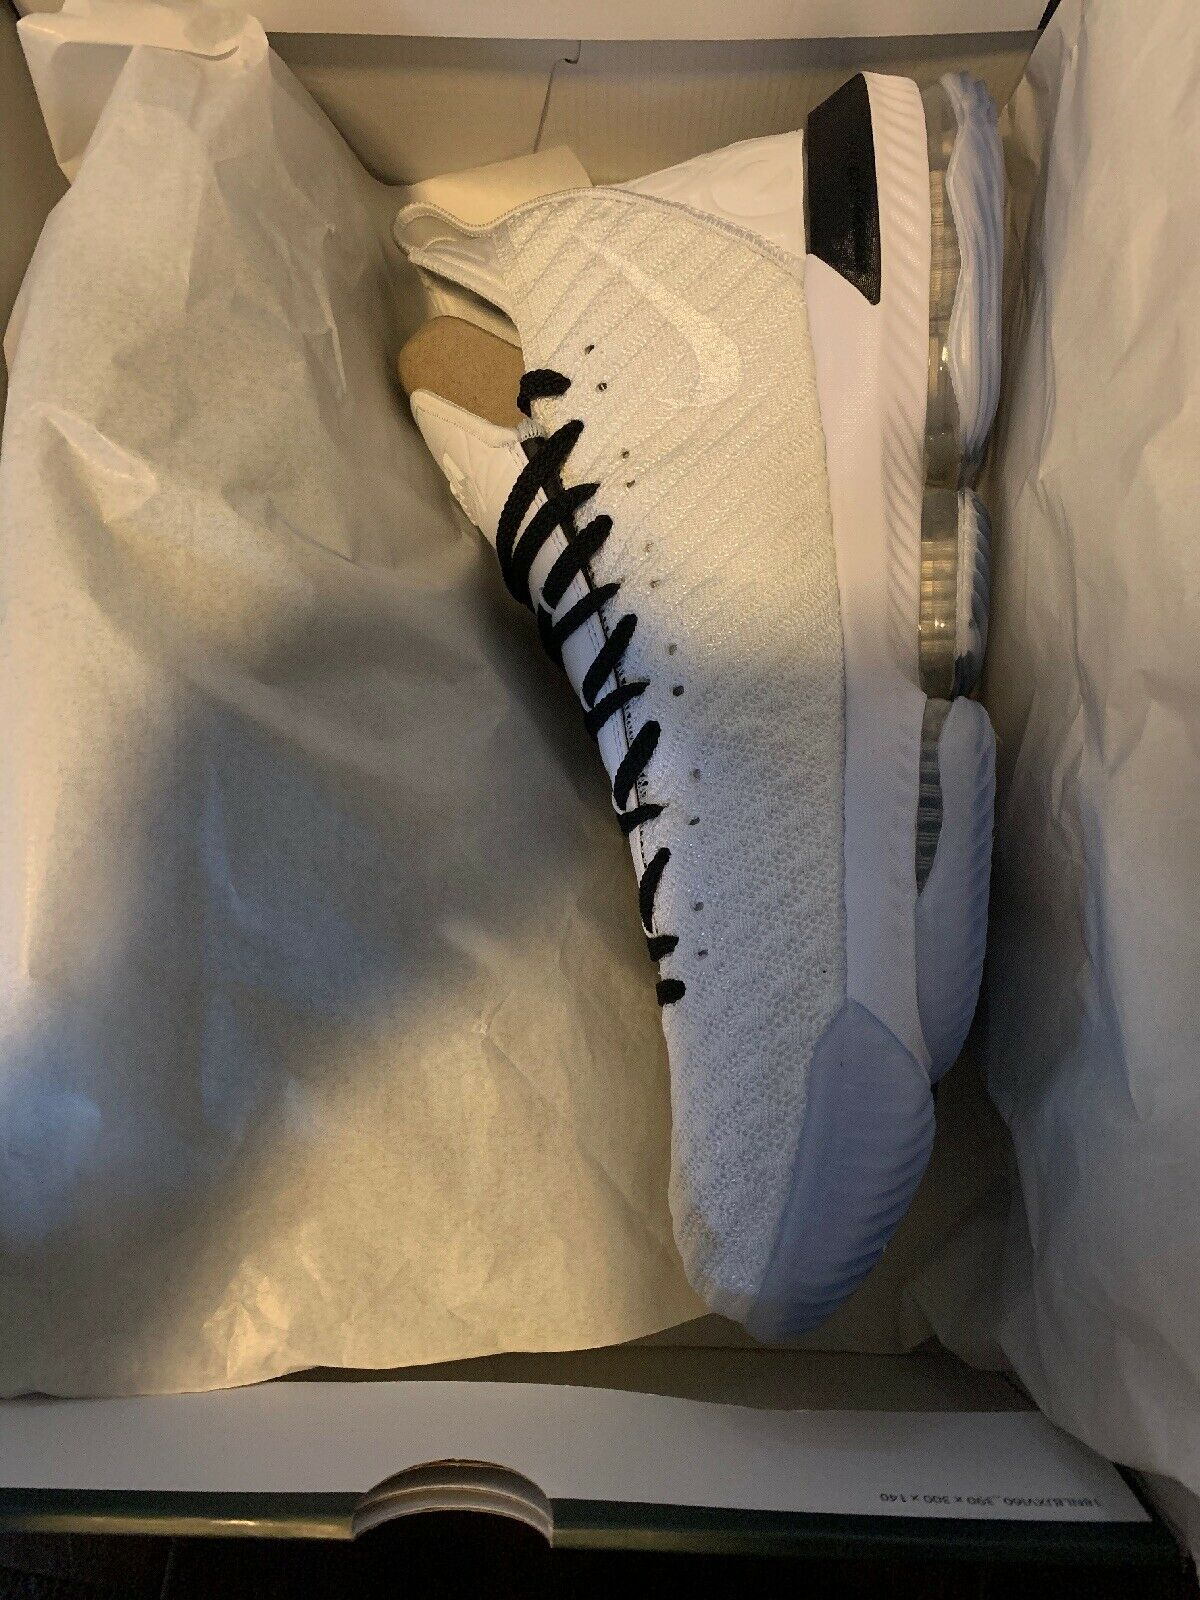 Lebron 16-Equality  I have Two pair of size 16